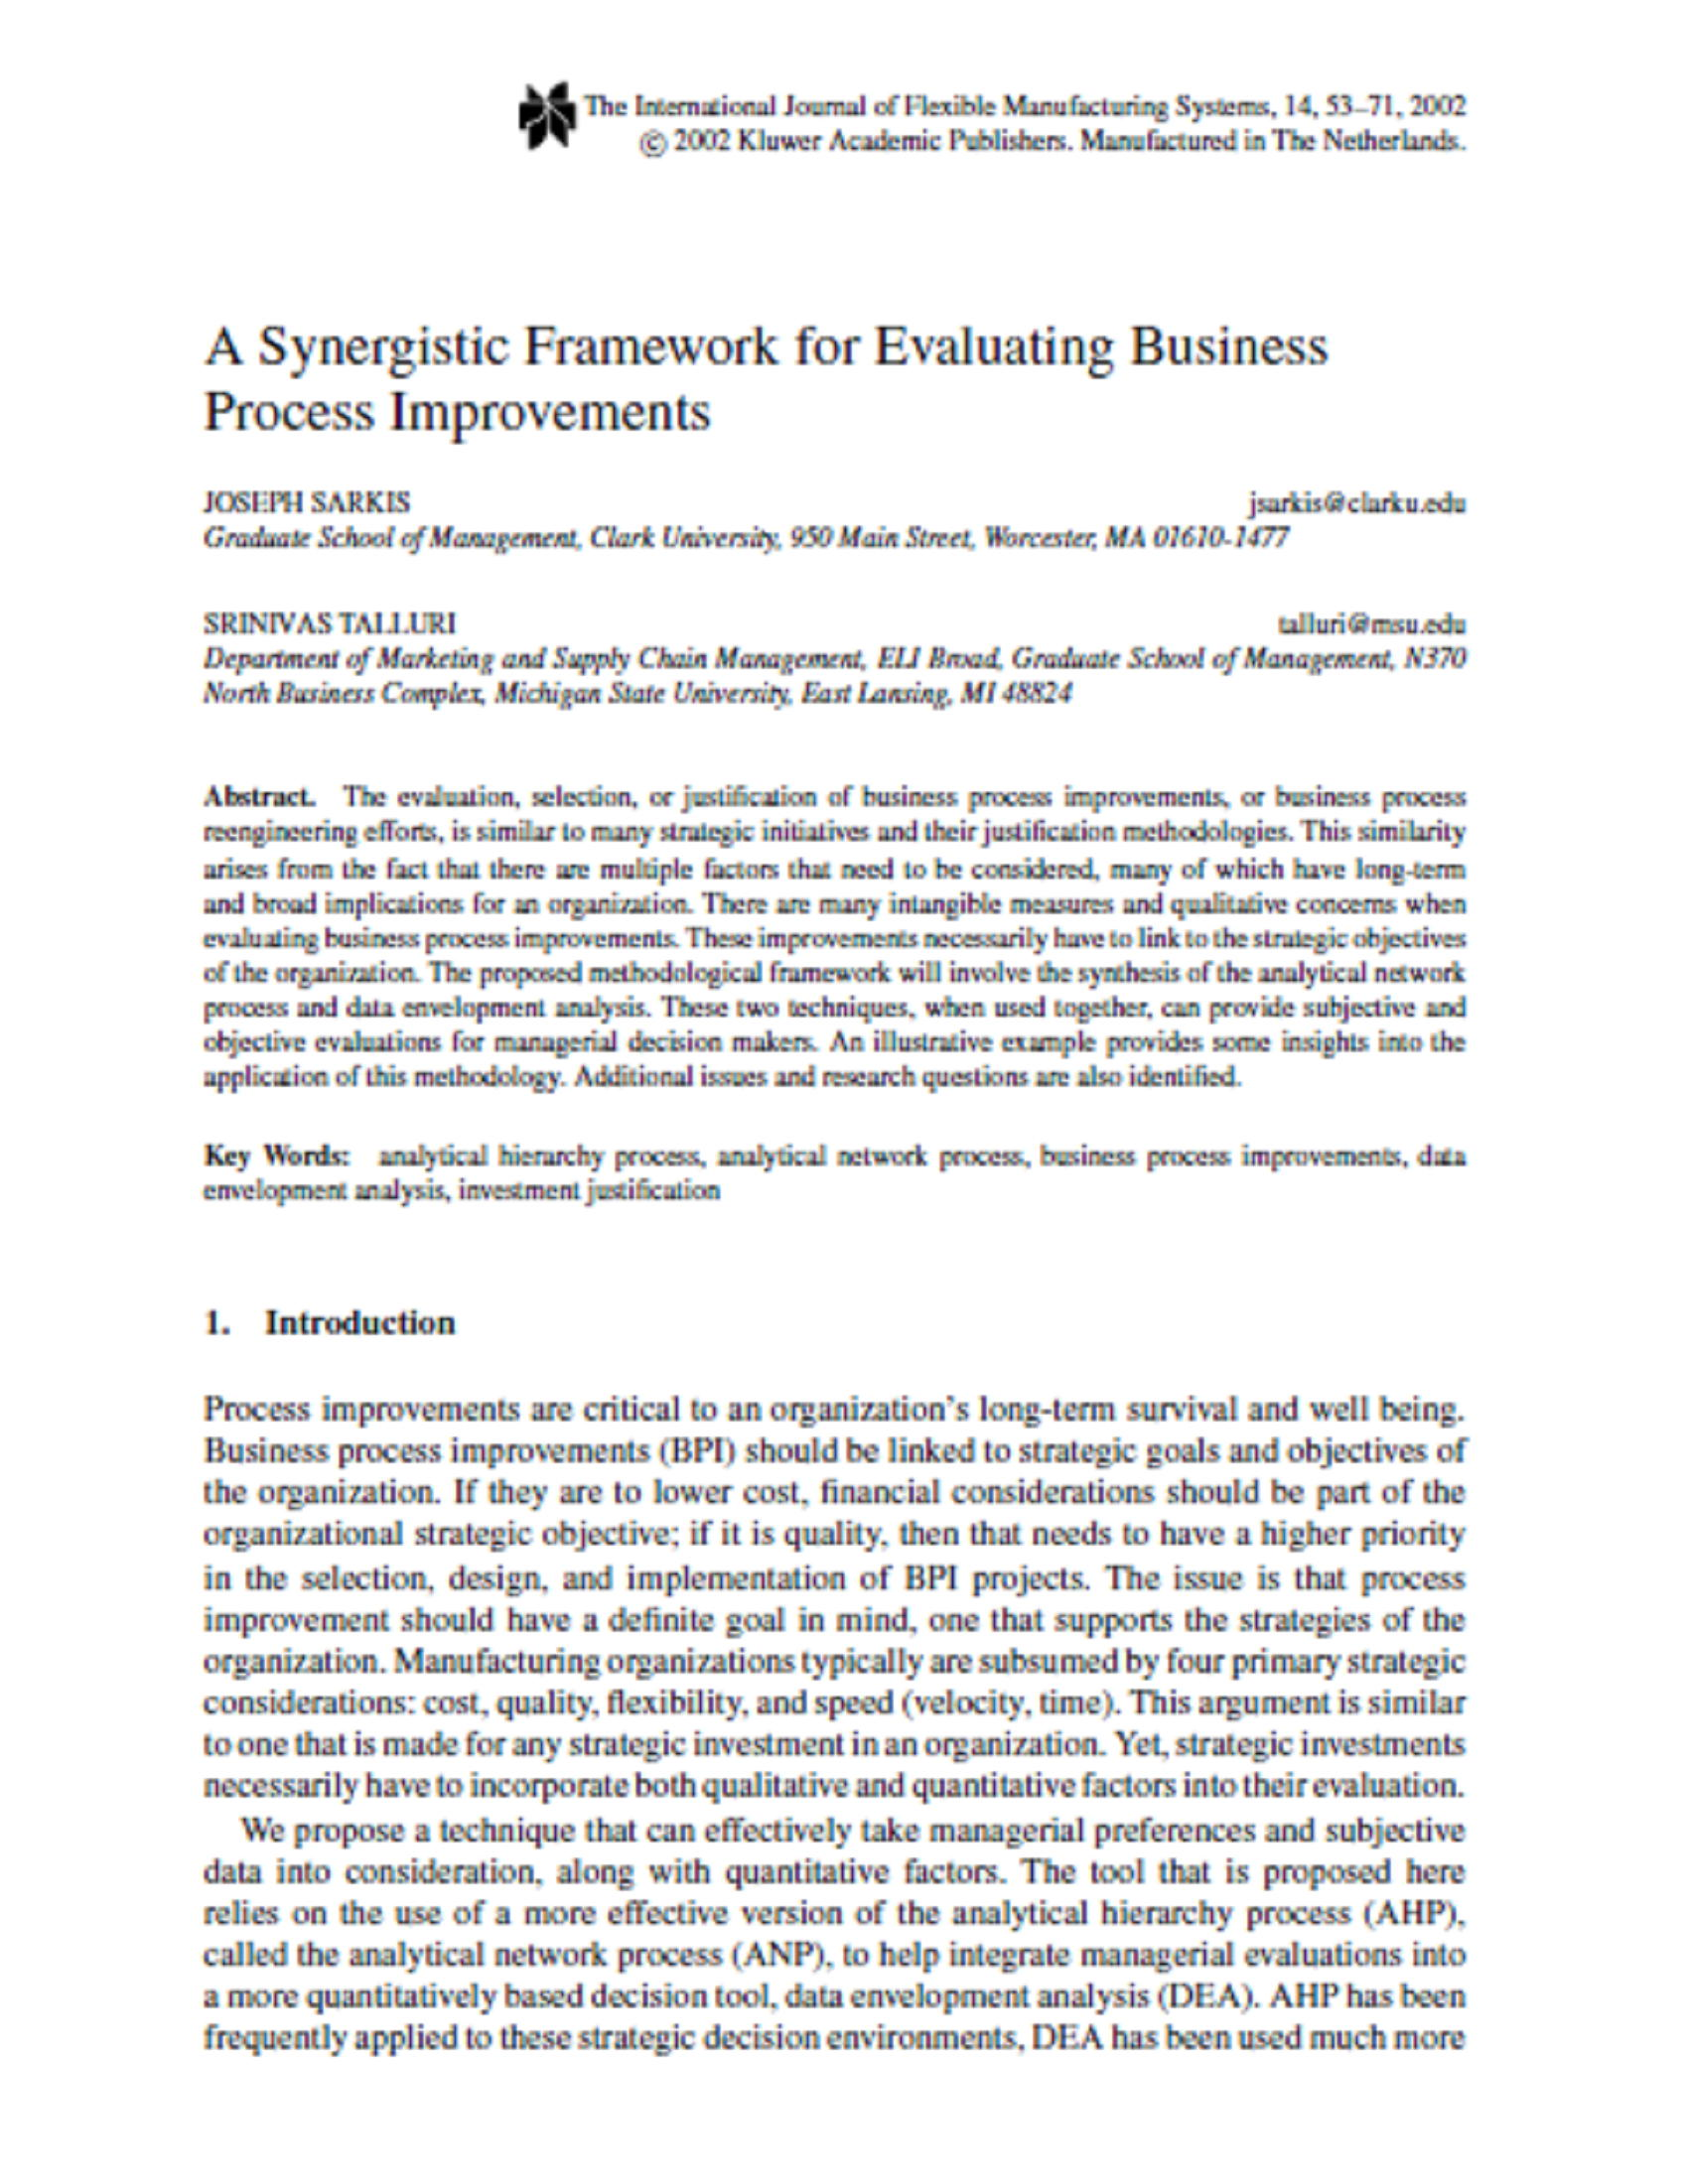 A Synergistic Framework for Evaluating Business Process Improvements 35